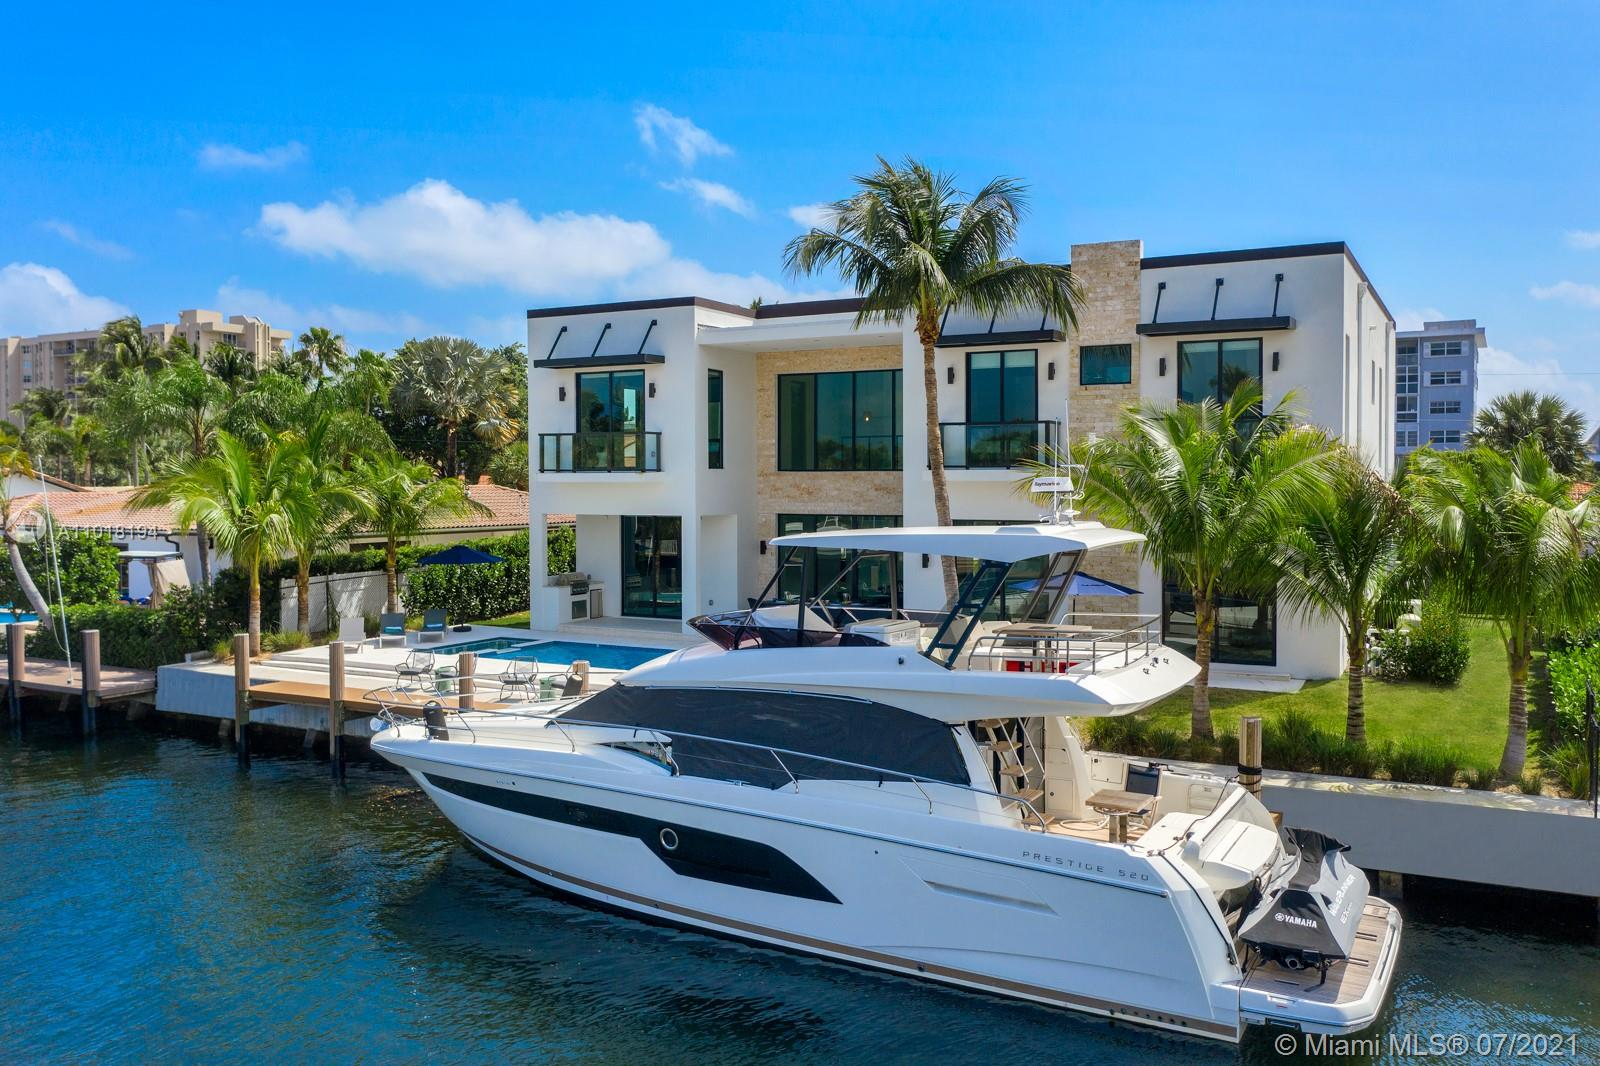 VACATION RENTAL! This amazing brand new modern mansion, is located in coral ridge one of the must exclusive neighborhood in Fort Lauderdale. The house is fully equipped. Our team is prepared to help you have the best vacations